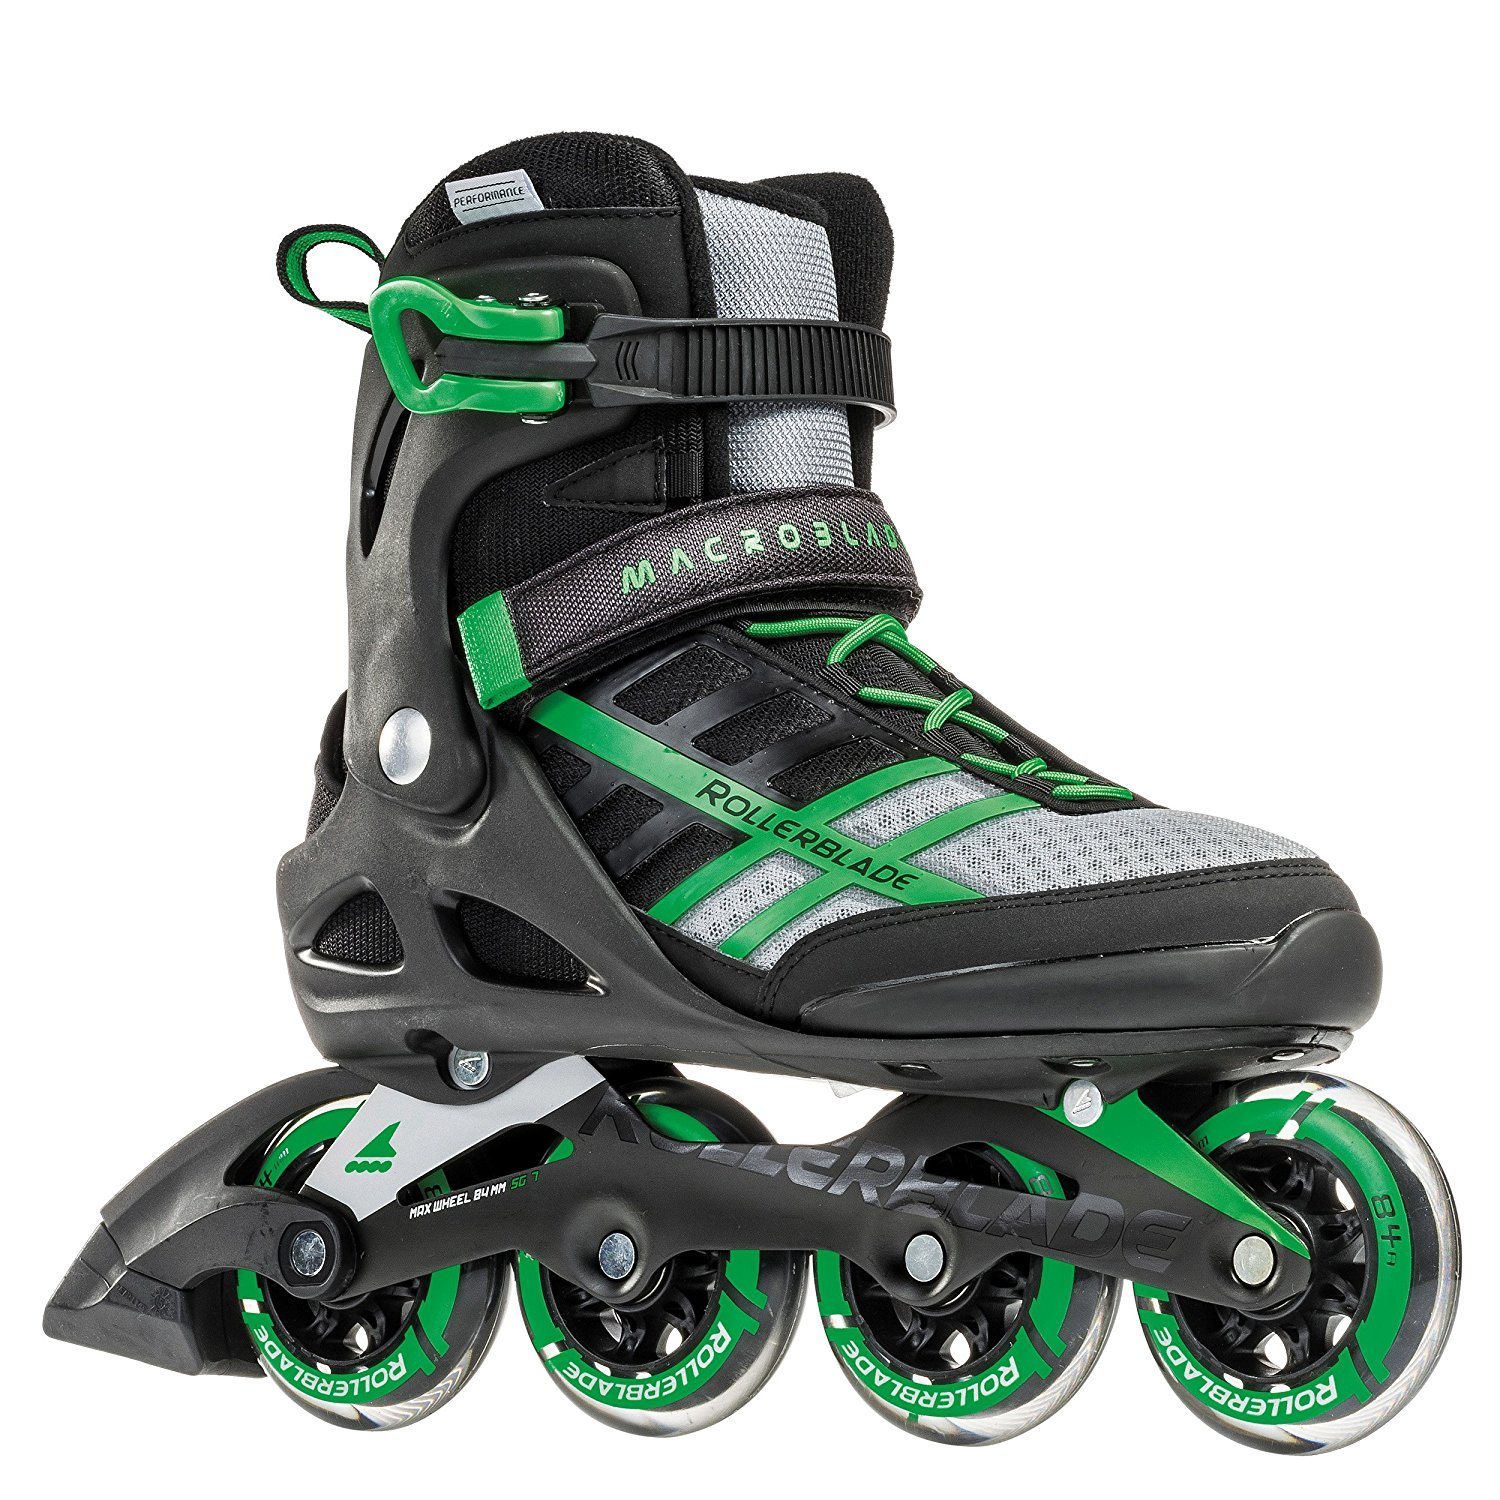 Rollerblade Rollerblade Macroblade 84 Mens Adult Fitness Inline Skate - Black/Green - 84 mm / 84A Wheels with SG7 Bearings - Performance Skates - US size 11, Black/Green, Size 11 by Rollerblade